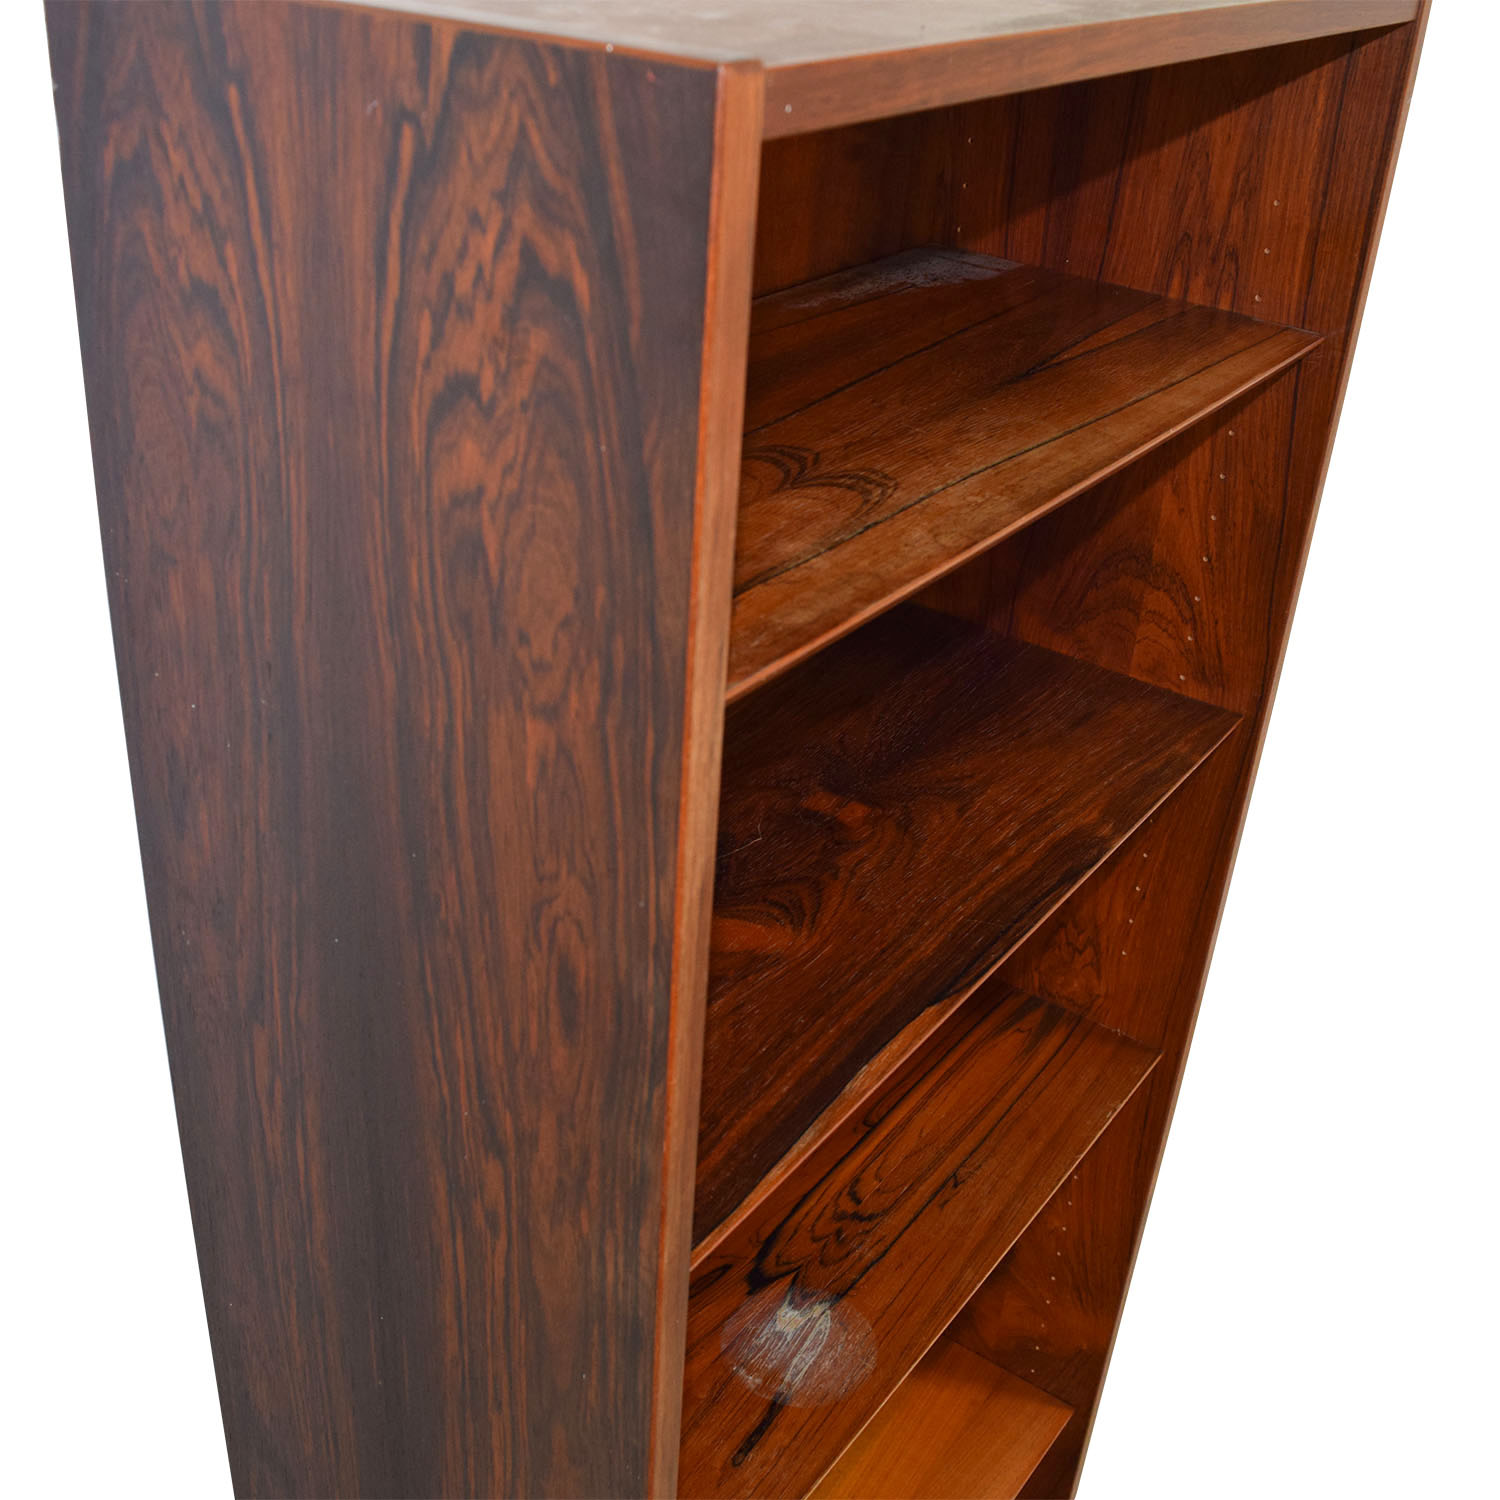 Danish Furniture Danish Furniture Rosewood Bookcase nj